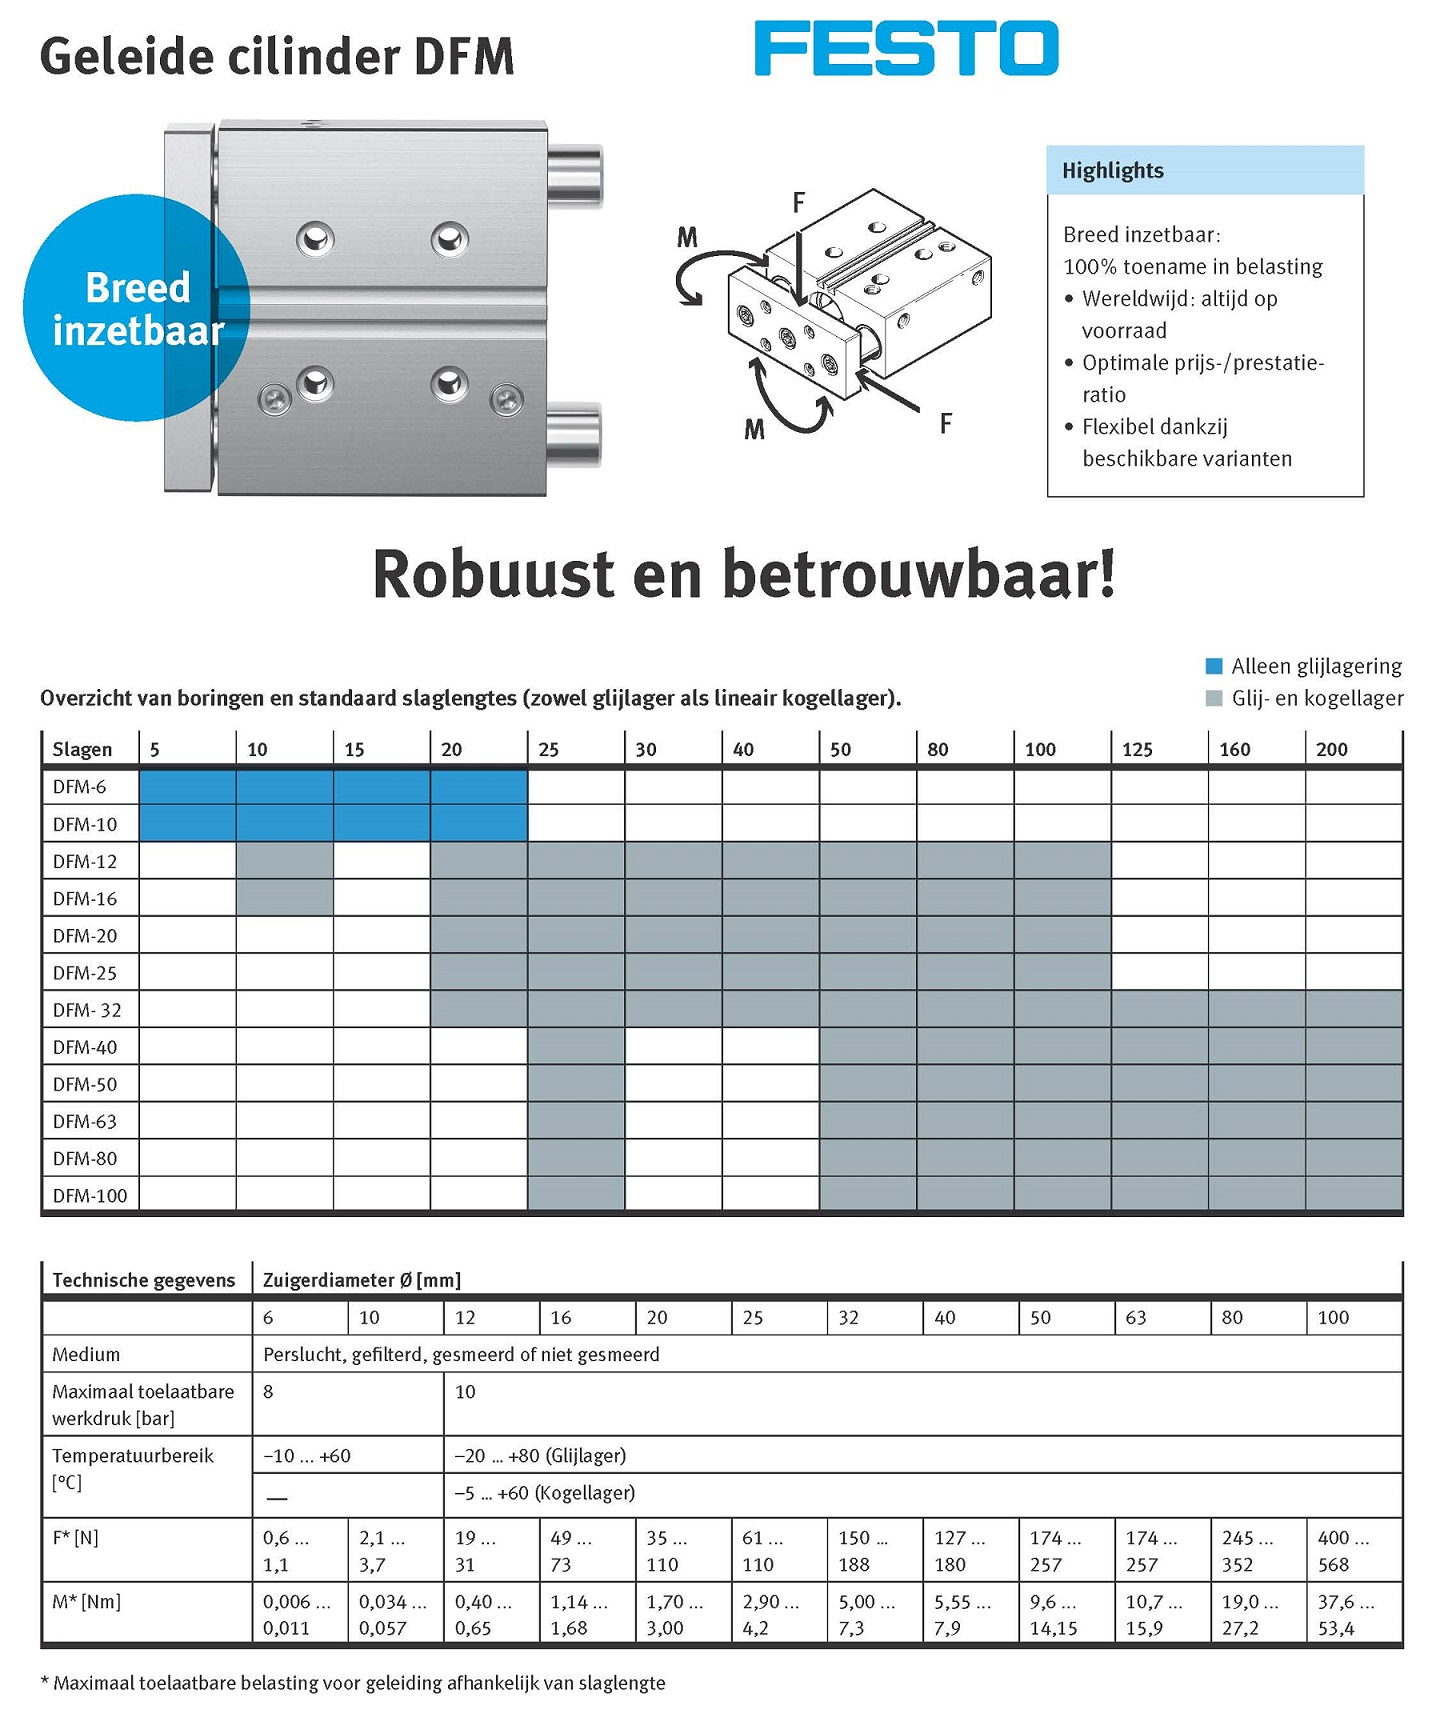 Poster Festo Product in Beeld